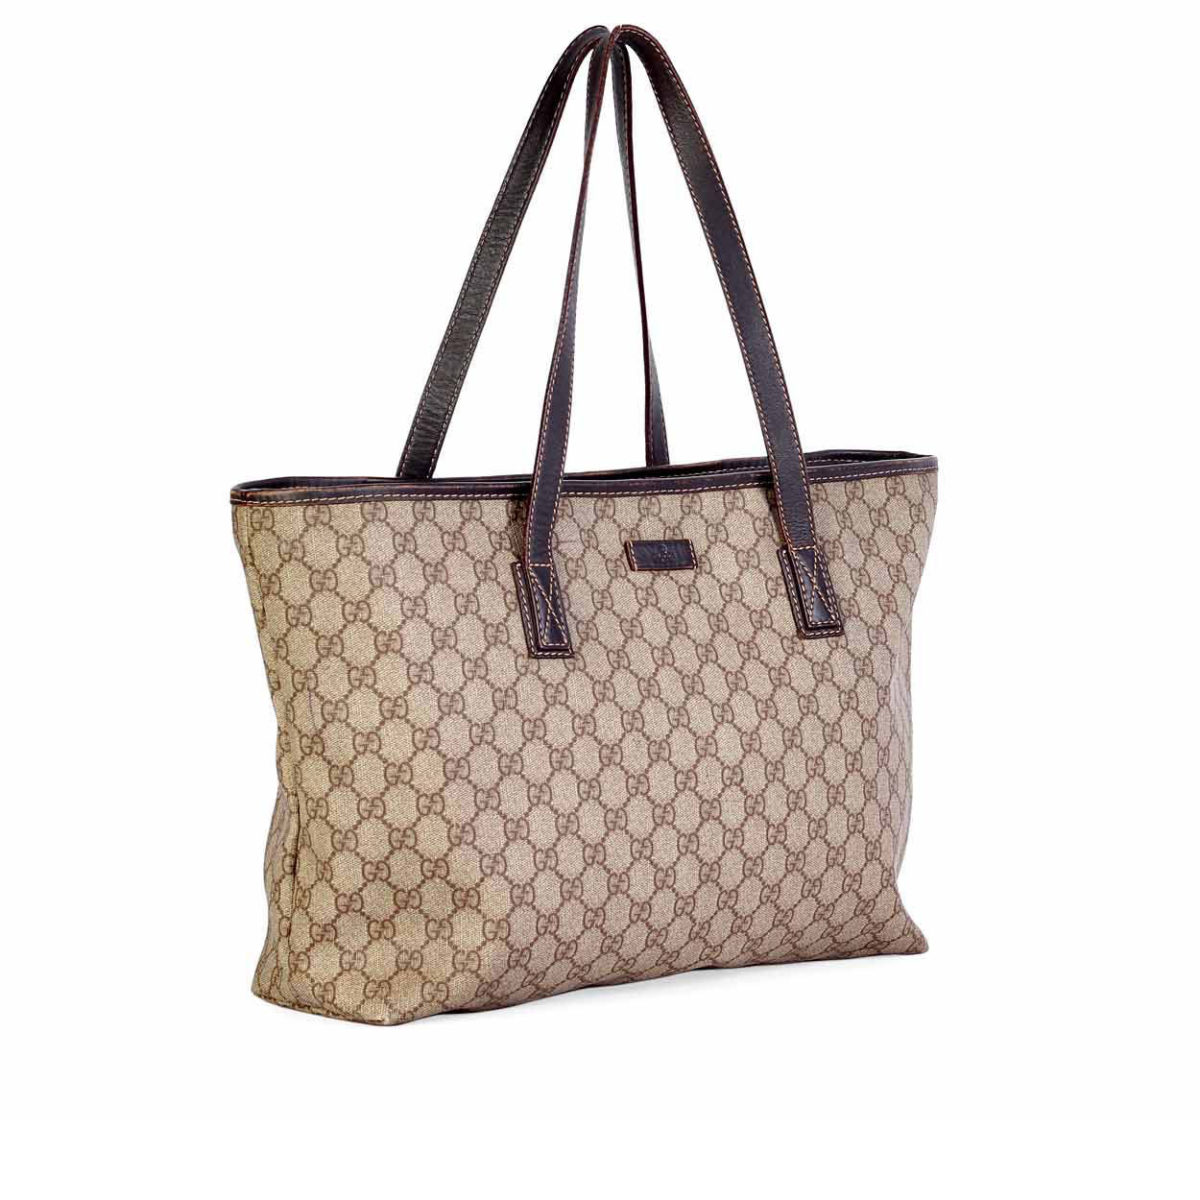 1a31de423153 GUCCI Monogram Top-Zip Tote Bag